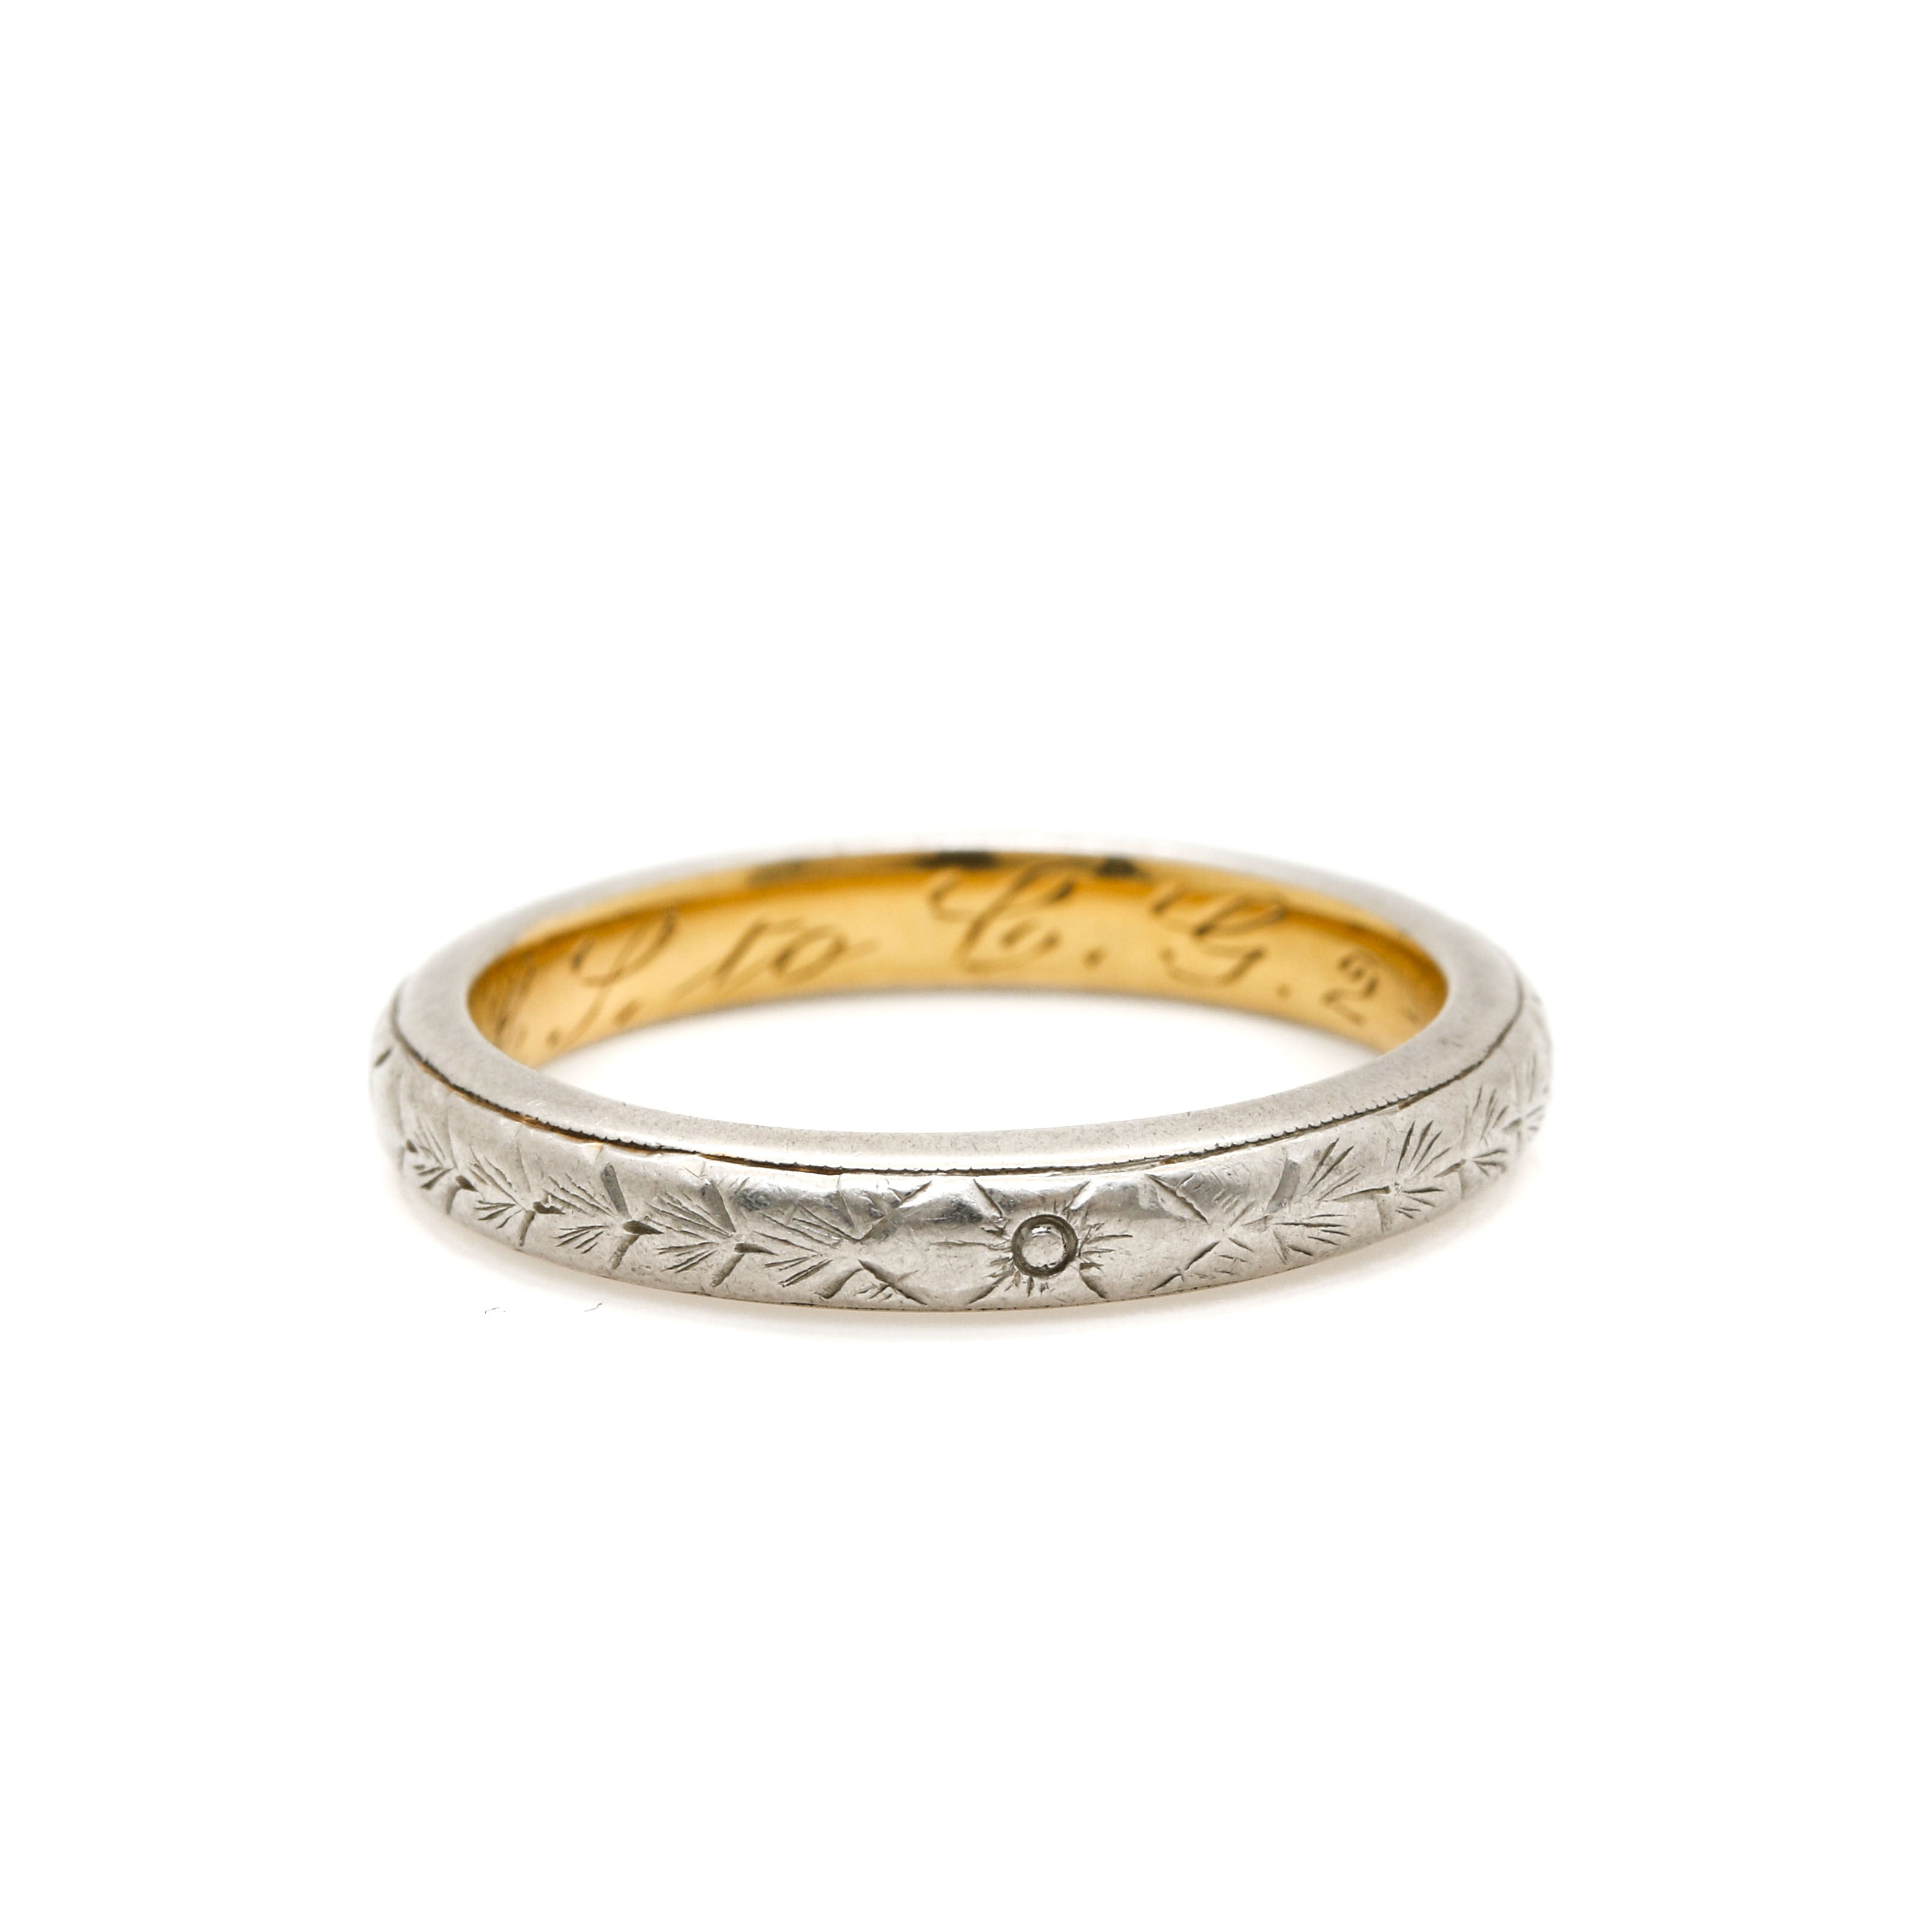 Platinum Band with 18K Yellow Gold Insert